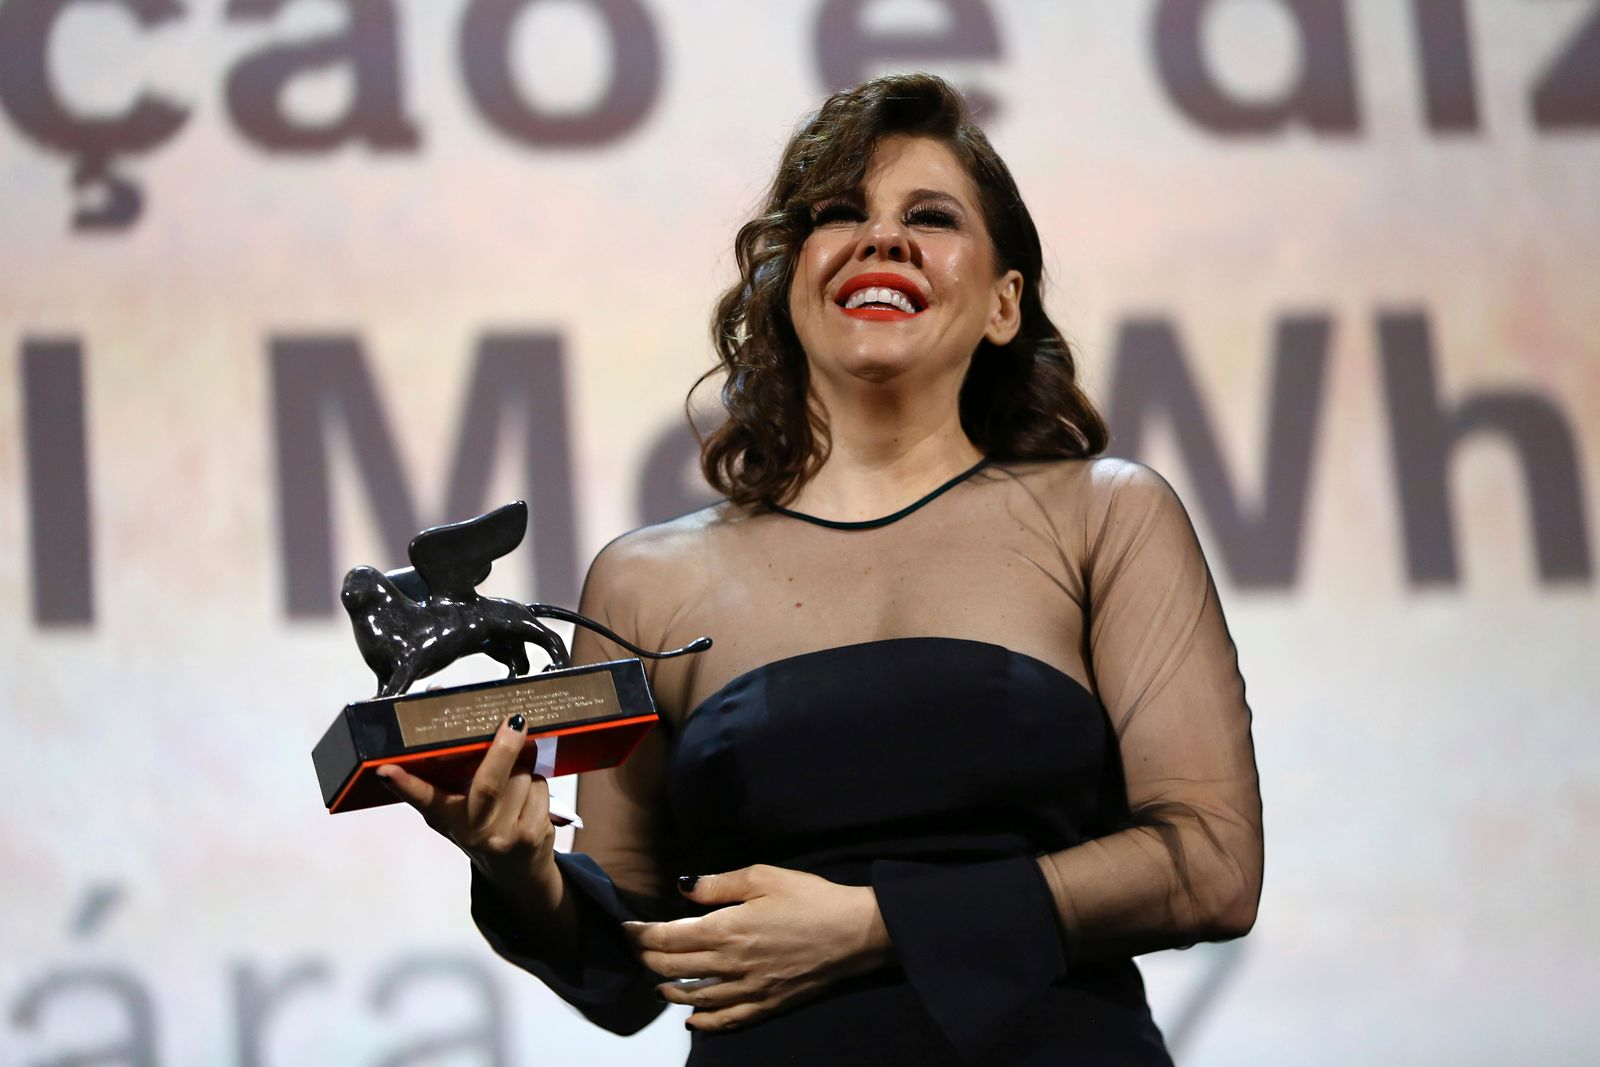 Actress Barbara Paz holds the Venice Classics Award for Best Documentary on Cinema for the film 'Babenco' at the closing ceremony of the 76th edition of the Venice Film Festival, Venice, Italy, Saturday, Sept. 7, 2019. (Photo by Joel C Ryan/Invision/AP)